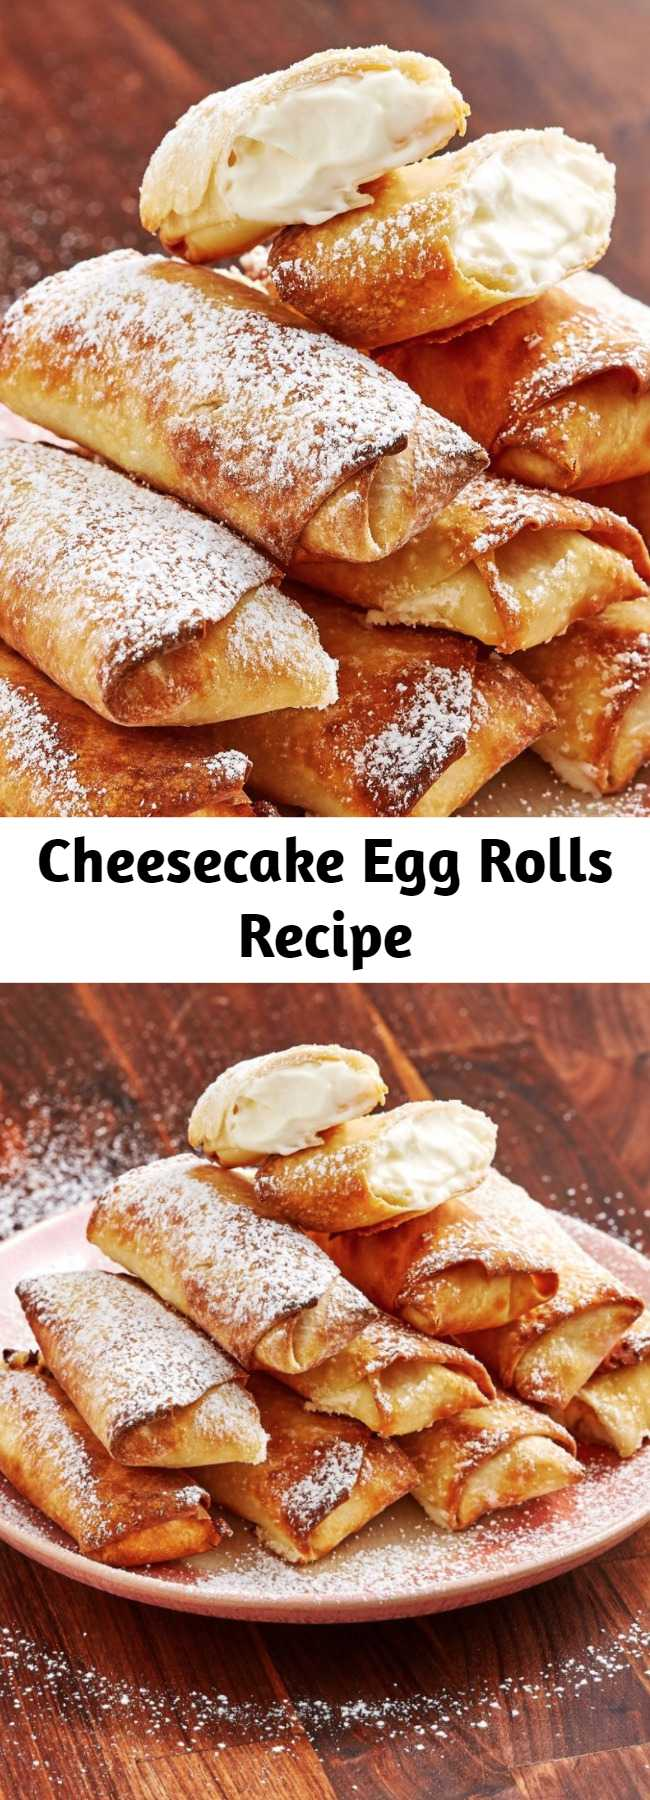 Cheesecake Egg Rolls Recipe - Crazy egg rolls are kind of our thing and we love this cheesecake version. The strawberry dipping sauce is mandatory because it is so good. You've never had cheesecake like this before.